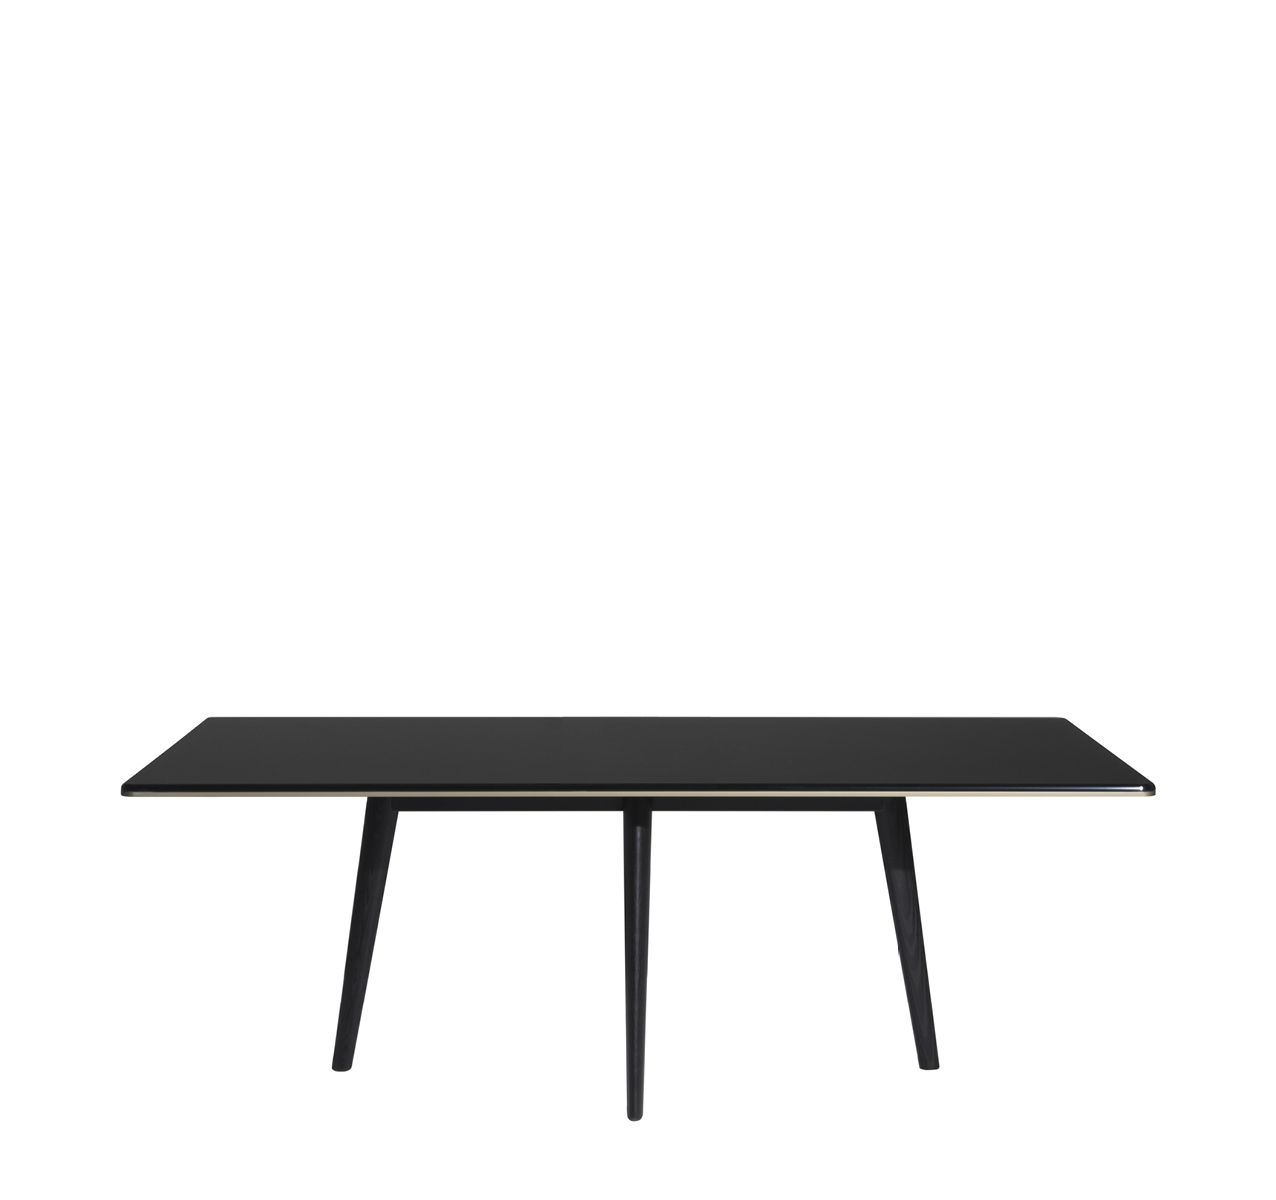 Francois Dining Table - Glass Top Glass Top/ Ebonized Ash Legs, 240